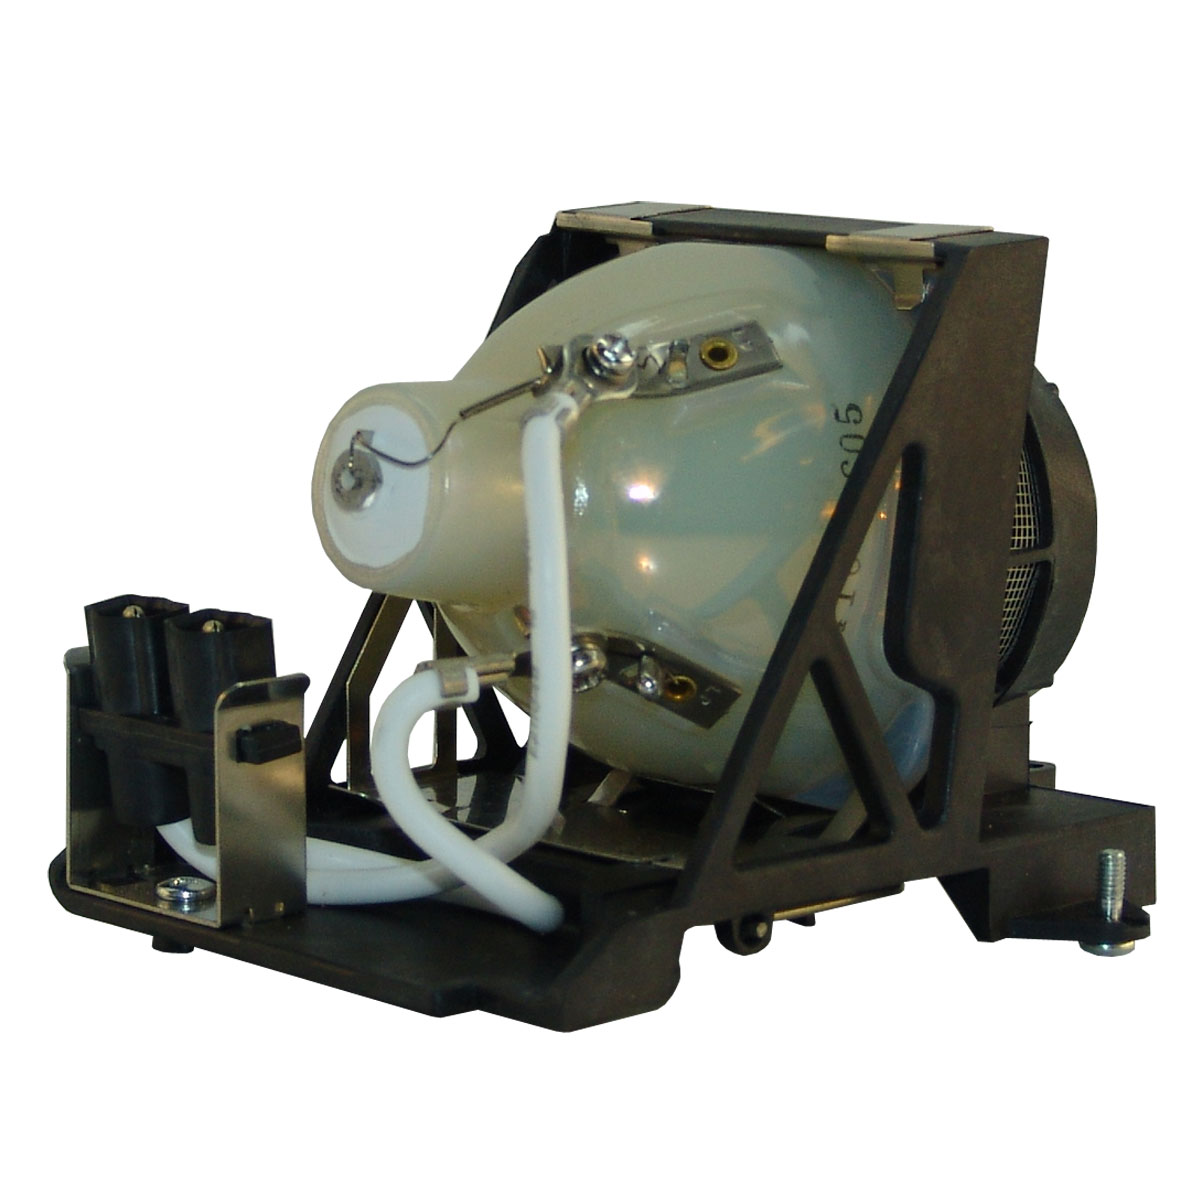 Original Philips Projector Lamp Replacement for Digital Projection 107-750 (Bulb Only) - image 4 de 5